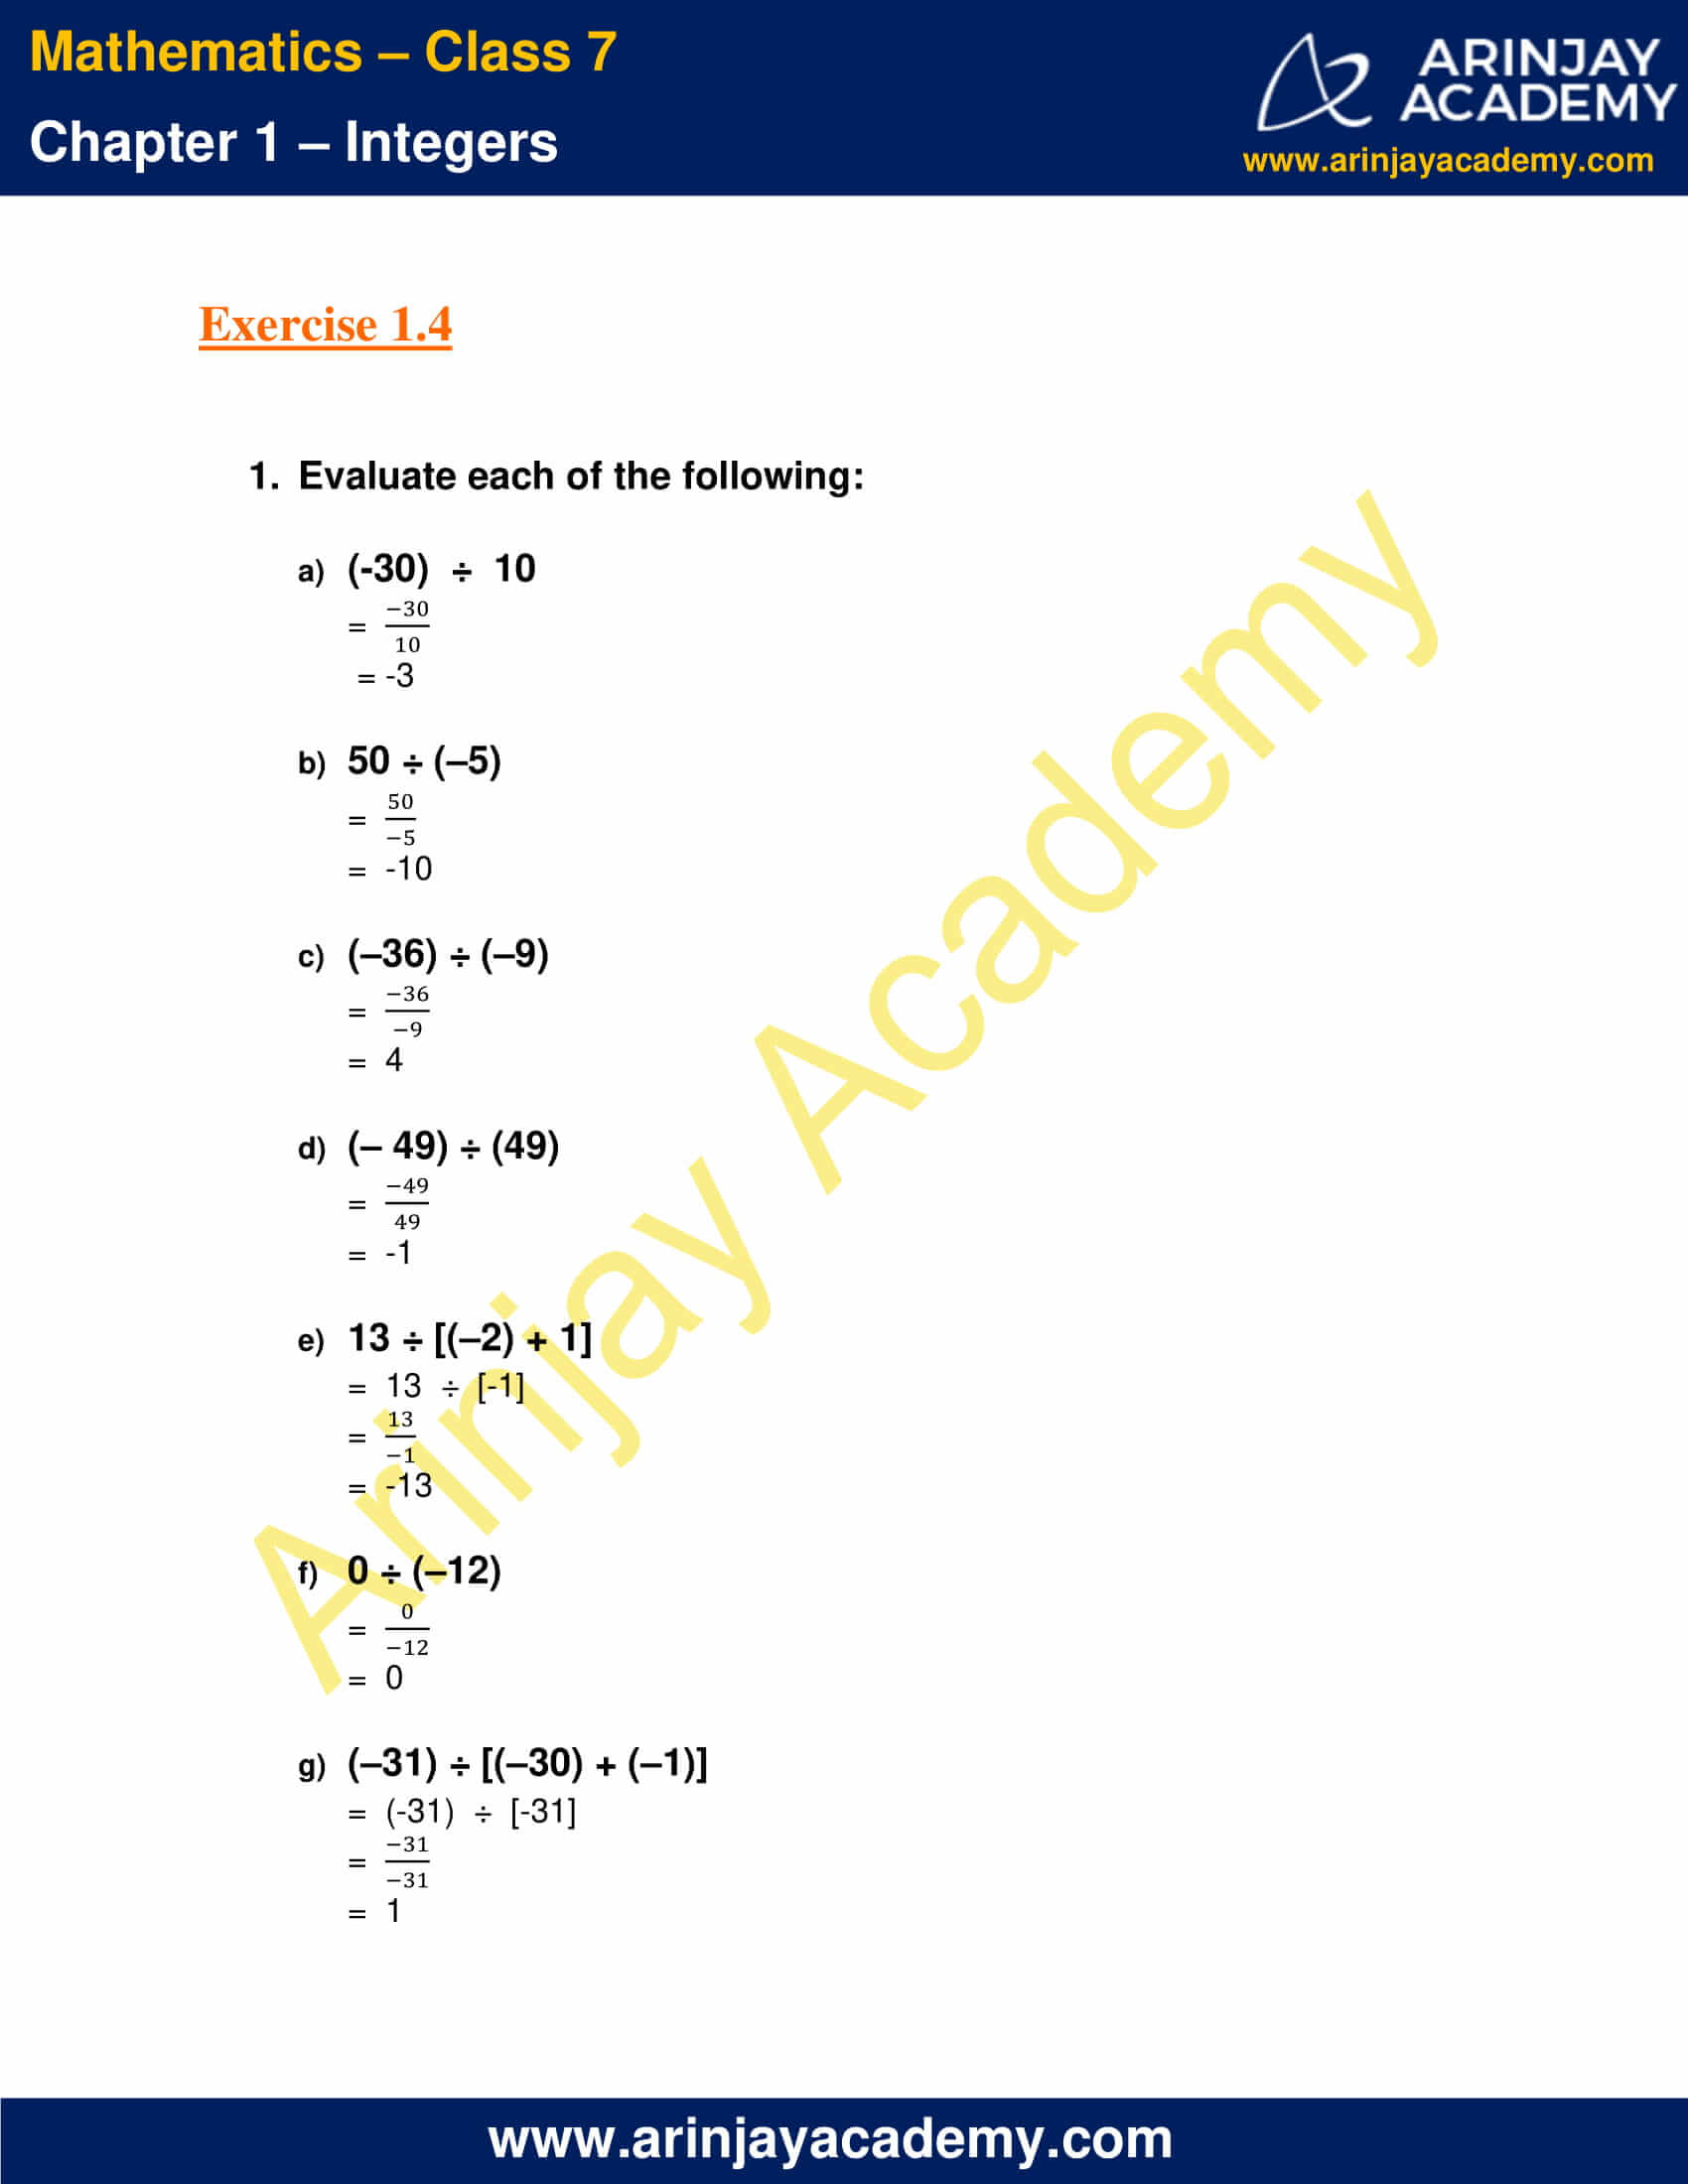 Class 7 Maths NCERT Solutions Chapter 1 Exercise 1.4 image 1